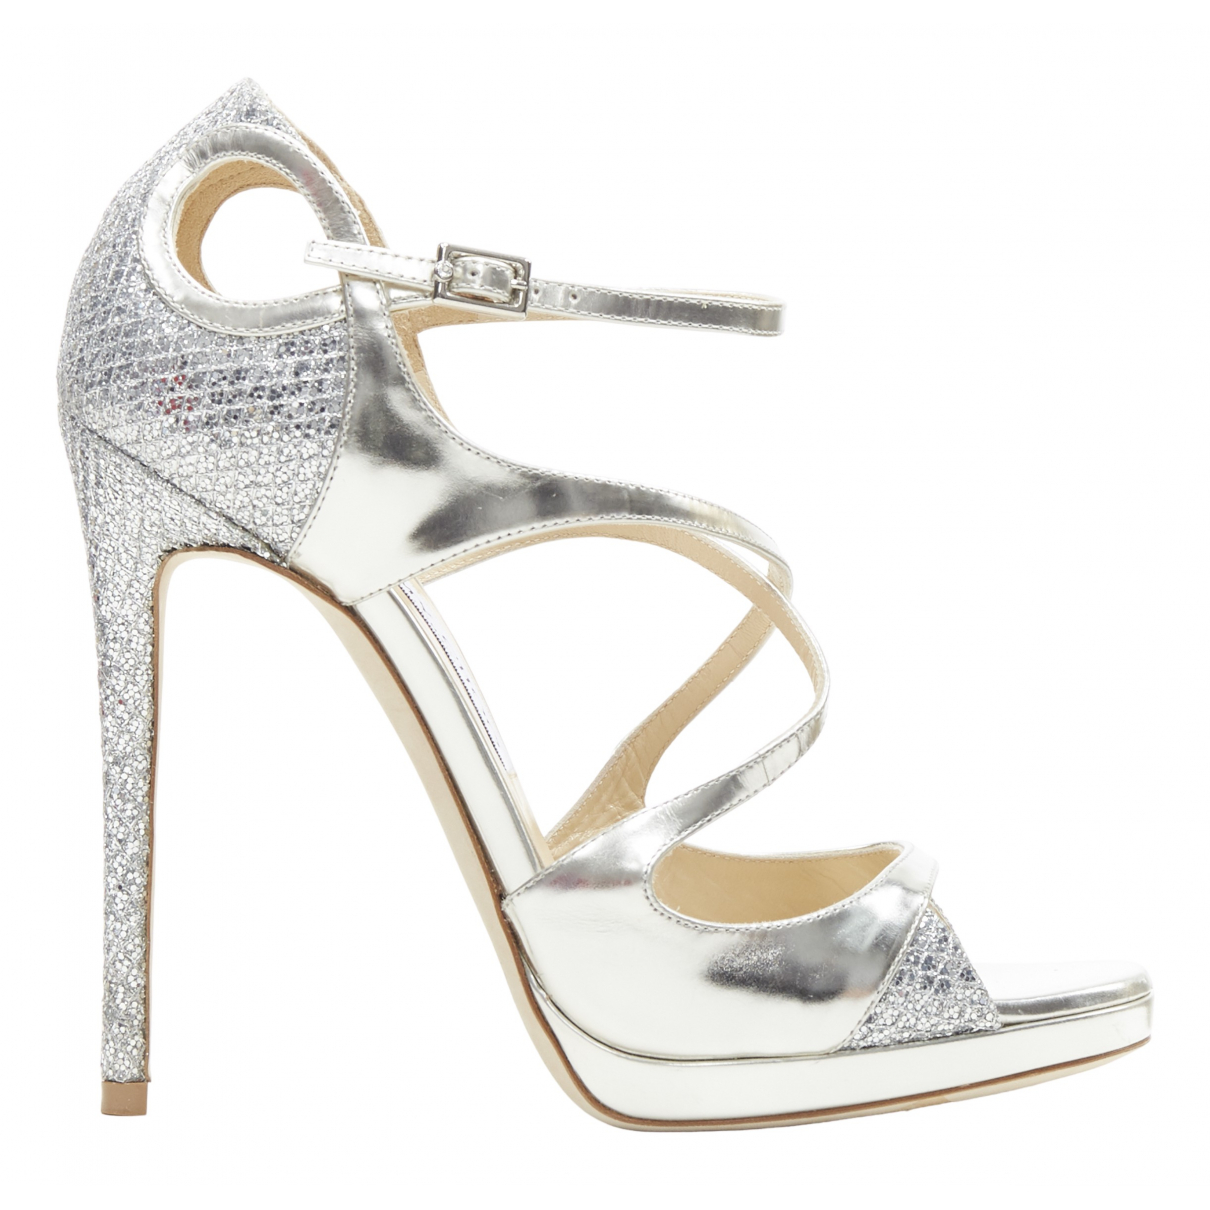 Jimmy Choo \N Silver Leather Sandals for Women 38 EU